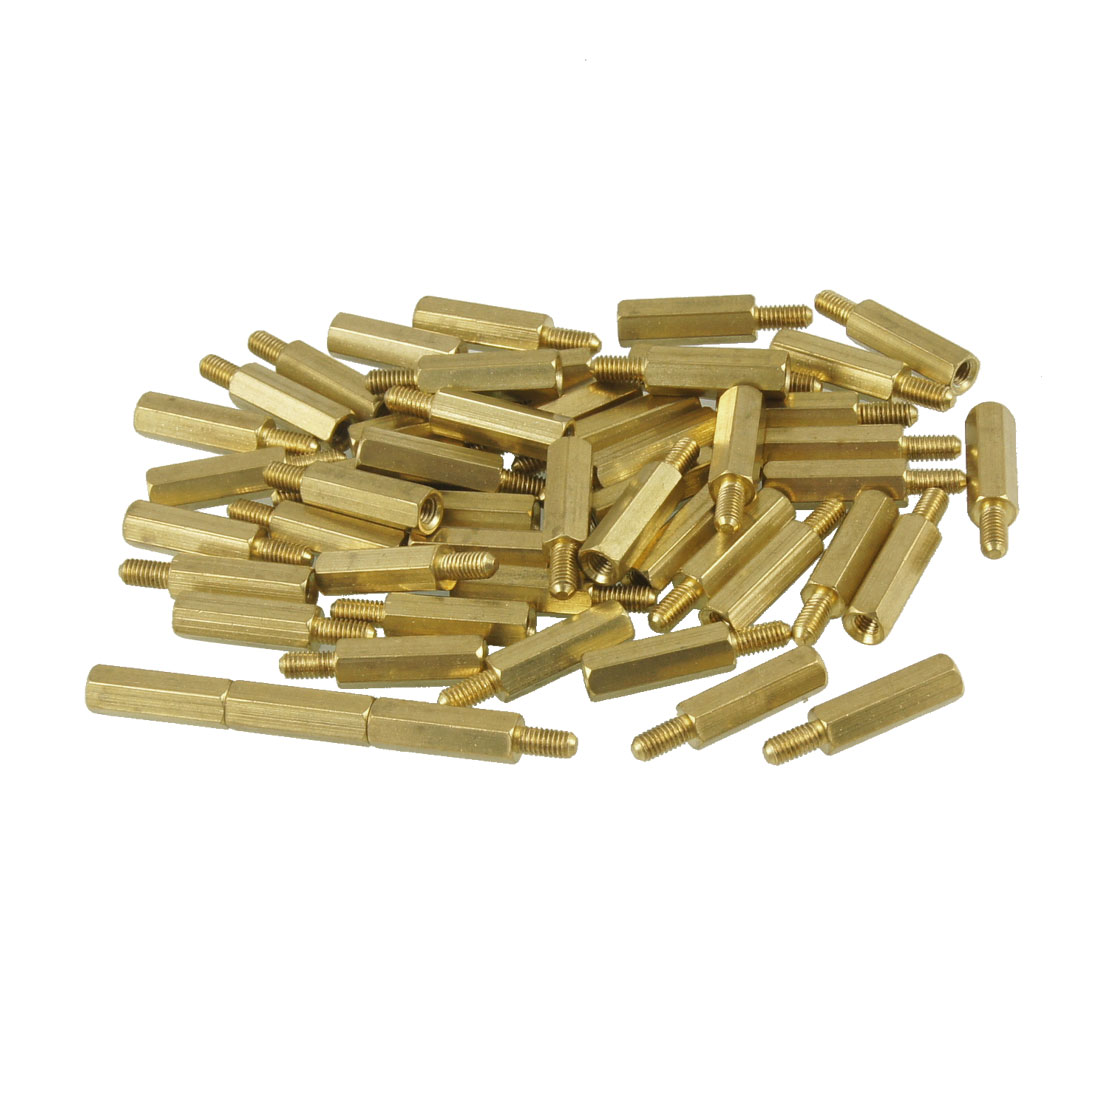 uxcell 50 Pcs Screw PCB Stand-off Spacer Hex <font><b>M3</b></font> Male x <font><b>M3</b></font> Female <font><b>15mm</b></font> Length image